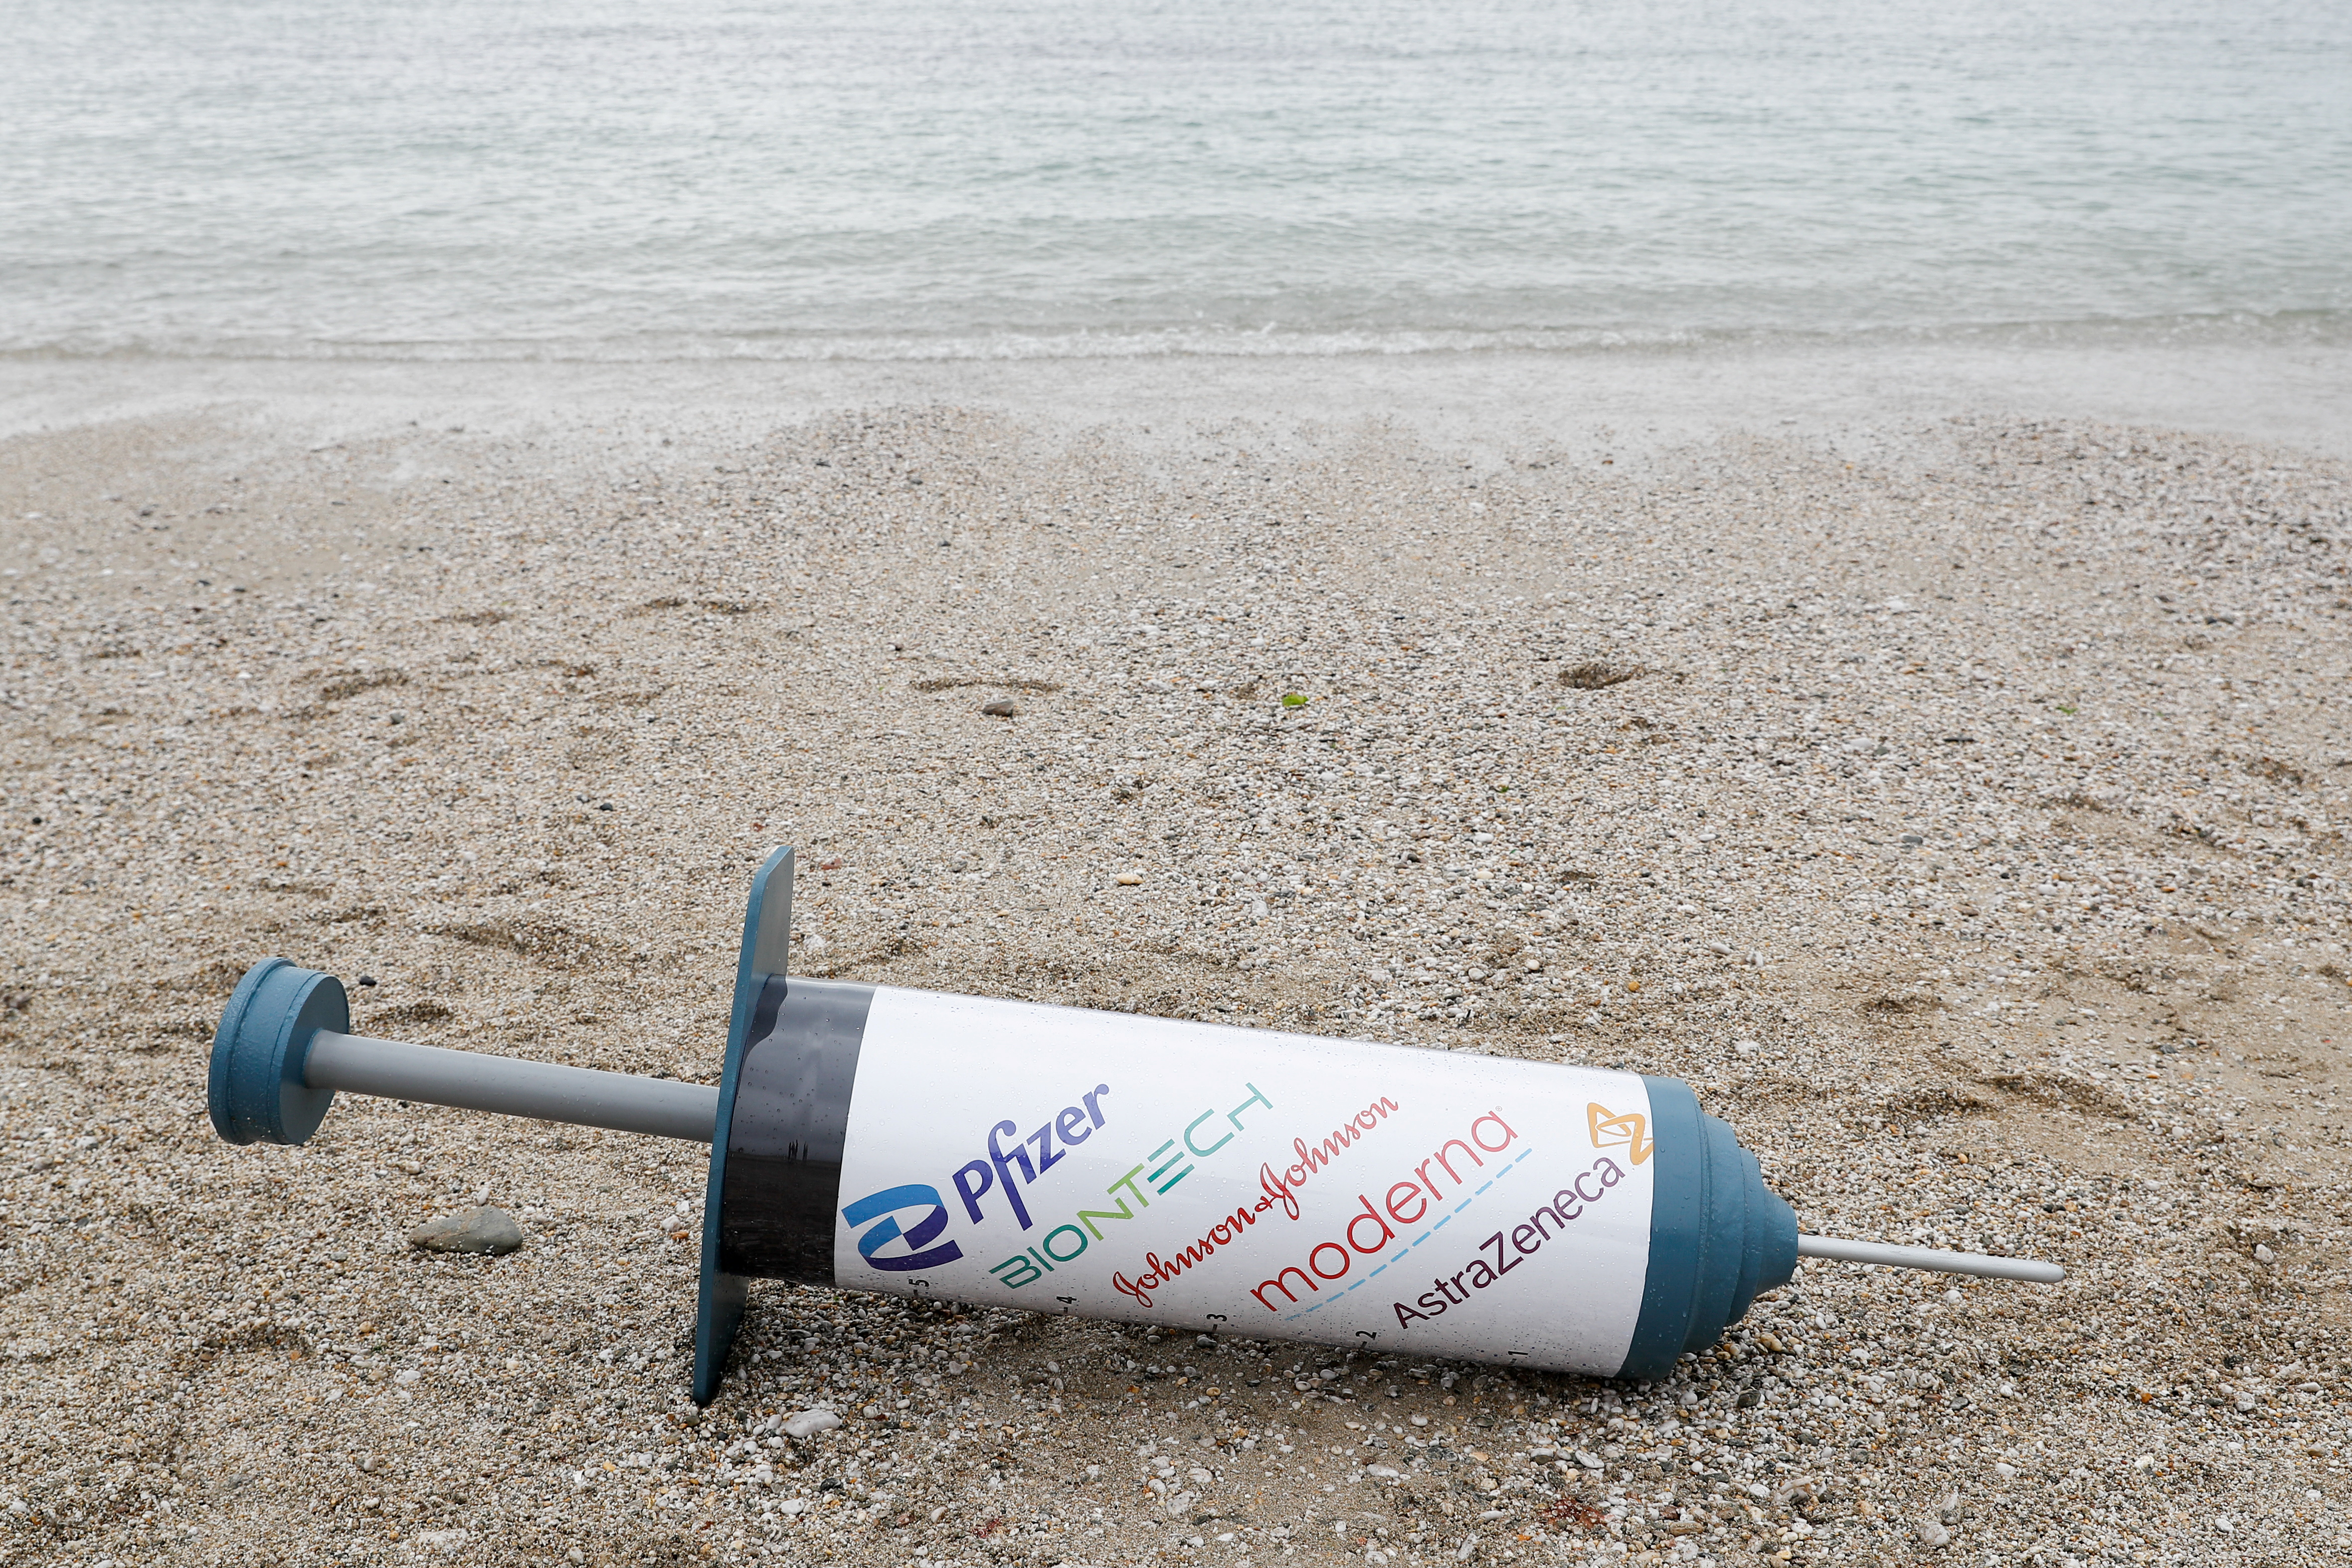 A prop vaccine is seen during a protest of Oxfam activists, at a beach near Falmouth, on the sidelines of G7 summit, in Cornwall, Britain, June 11, 2021.  REUTERS/Peter Nicholls